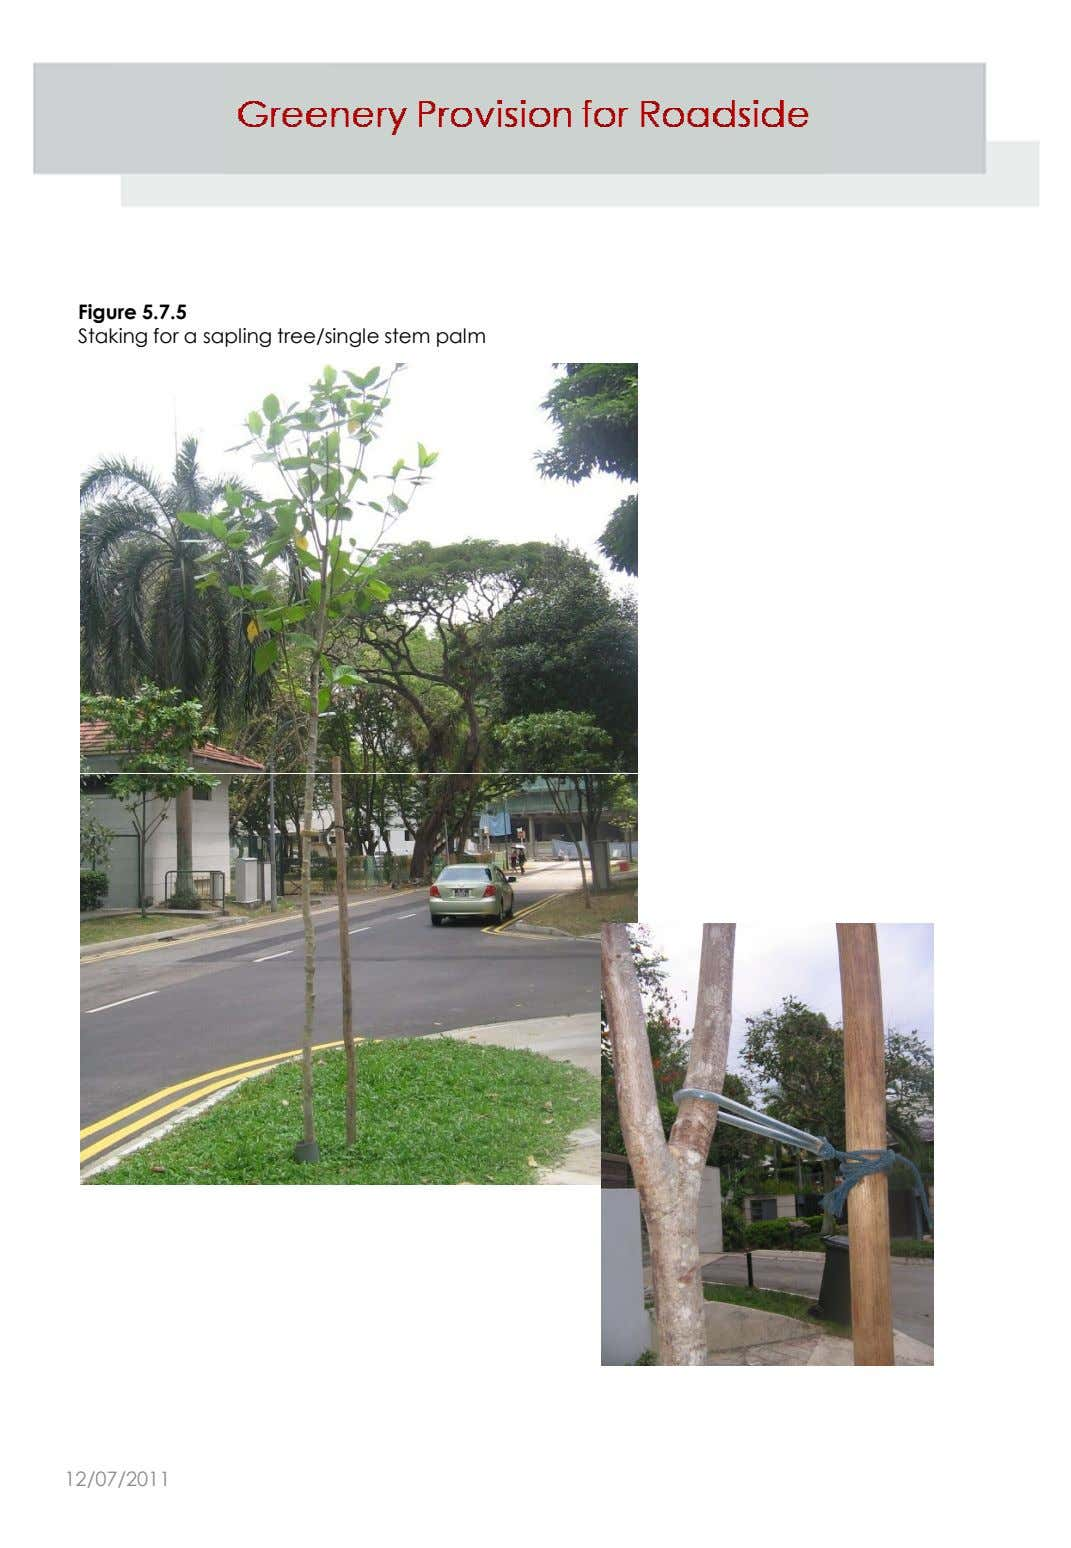 Figure 5.7.5 Staking for a sapling tree/single stem palm 12/07/2011